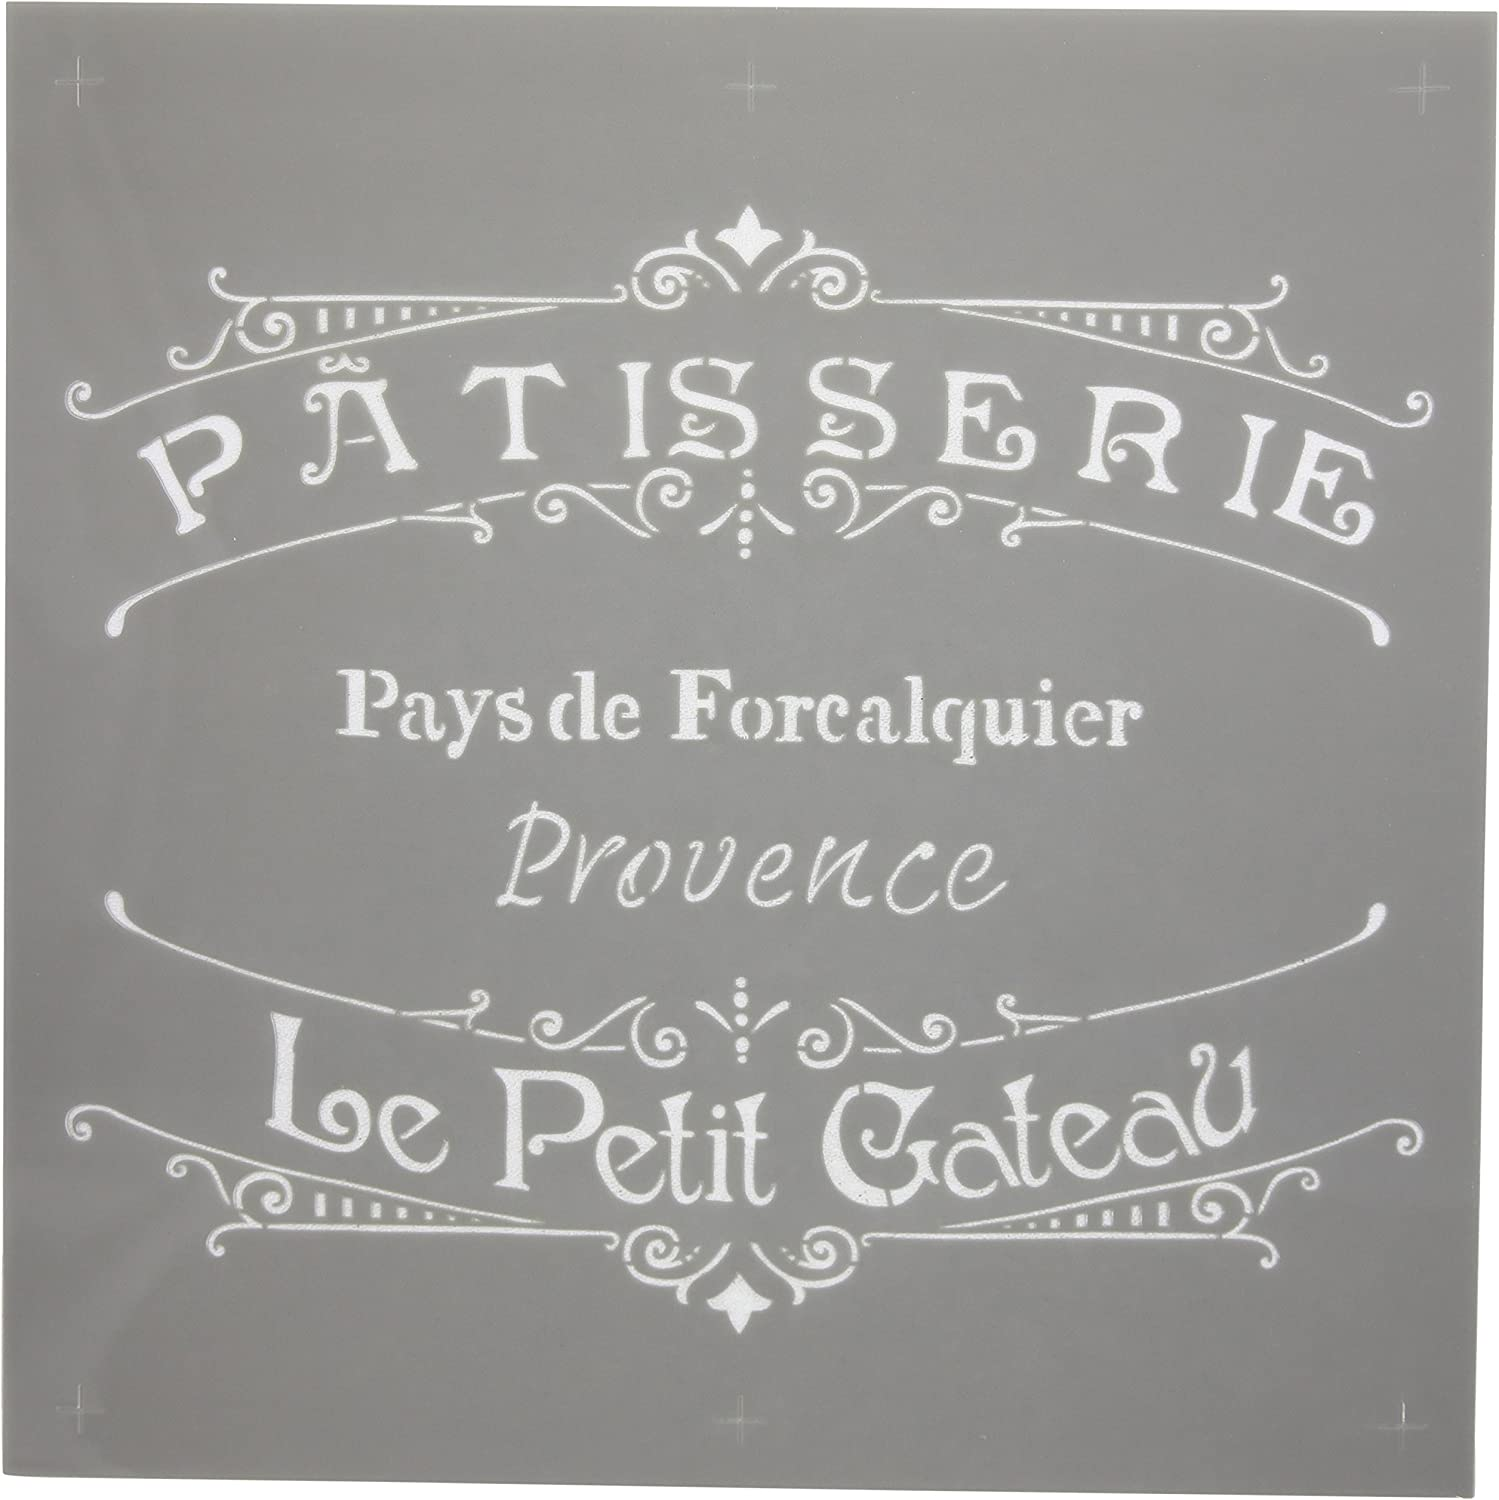 DecoArt Deco Art Americana Decor Stencil, The French Bakery, 1 Pack